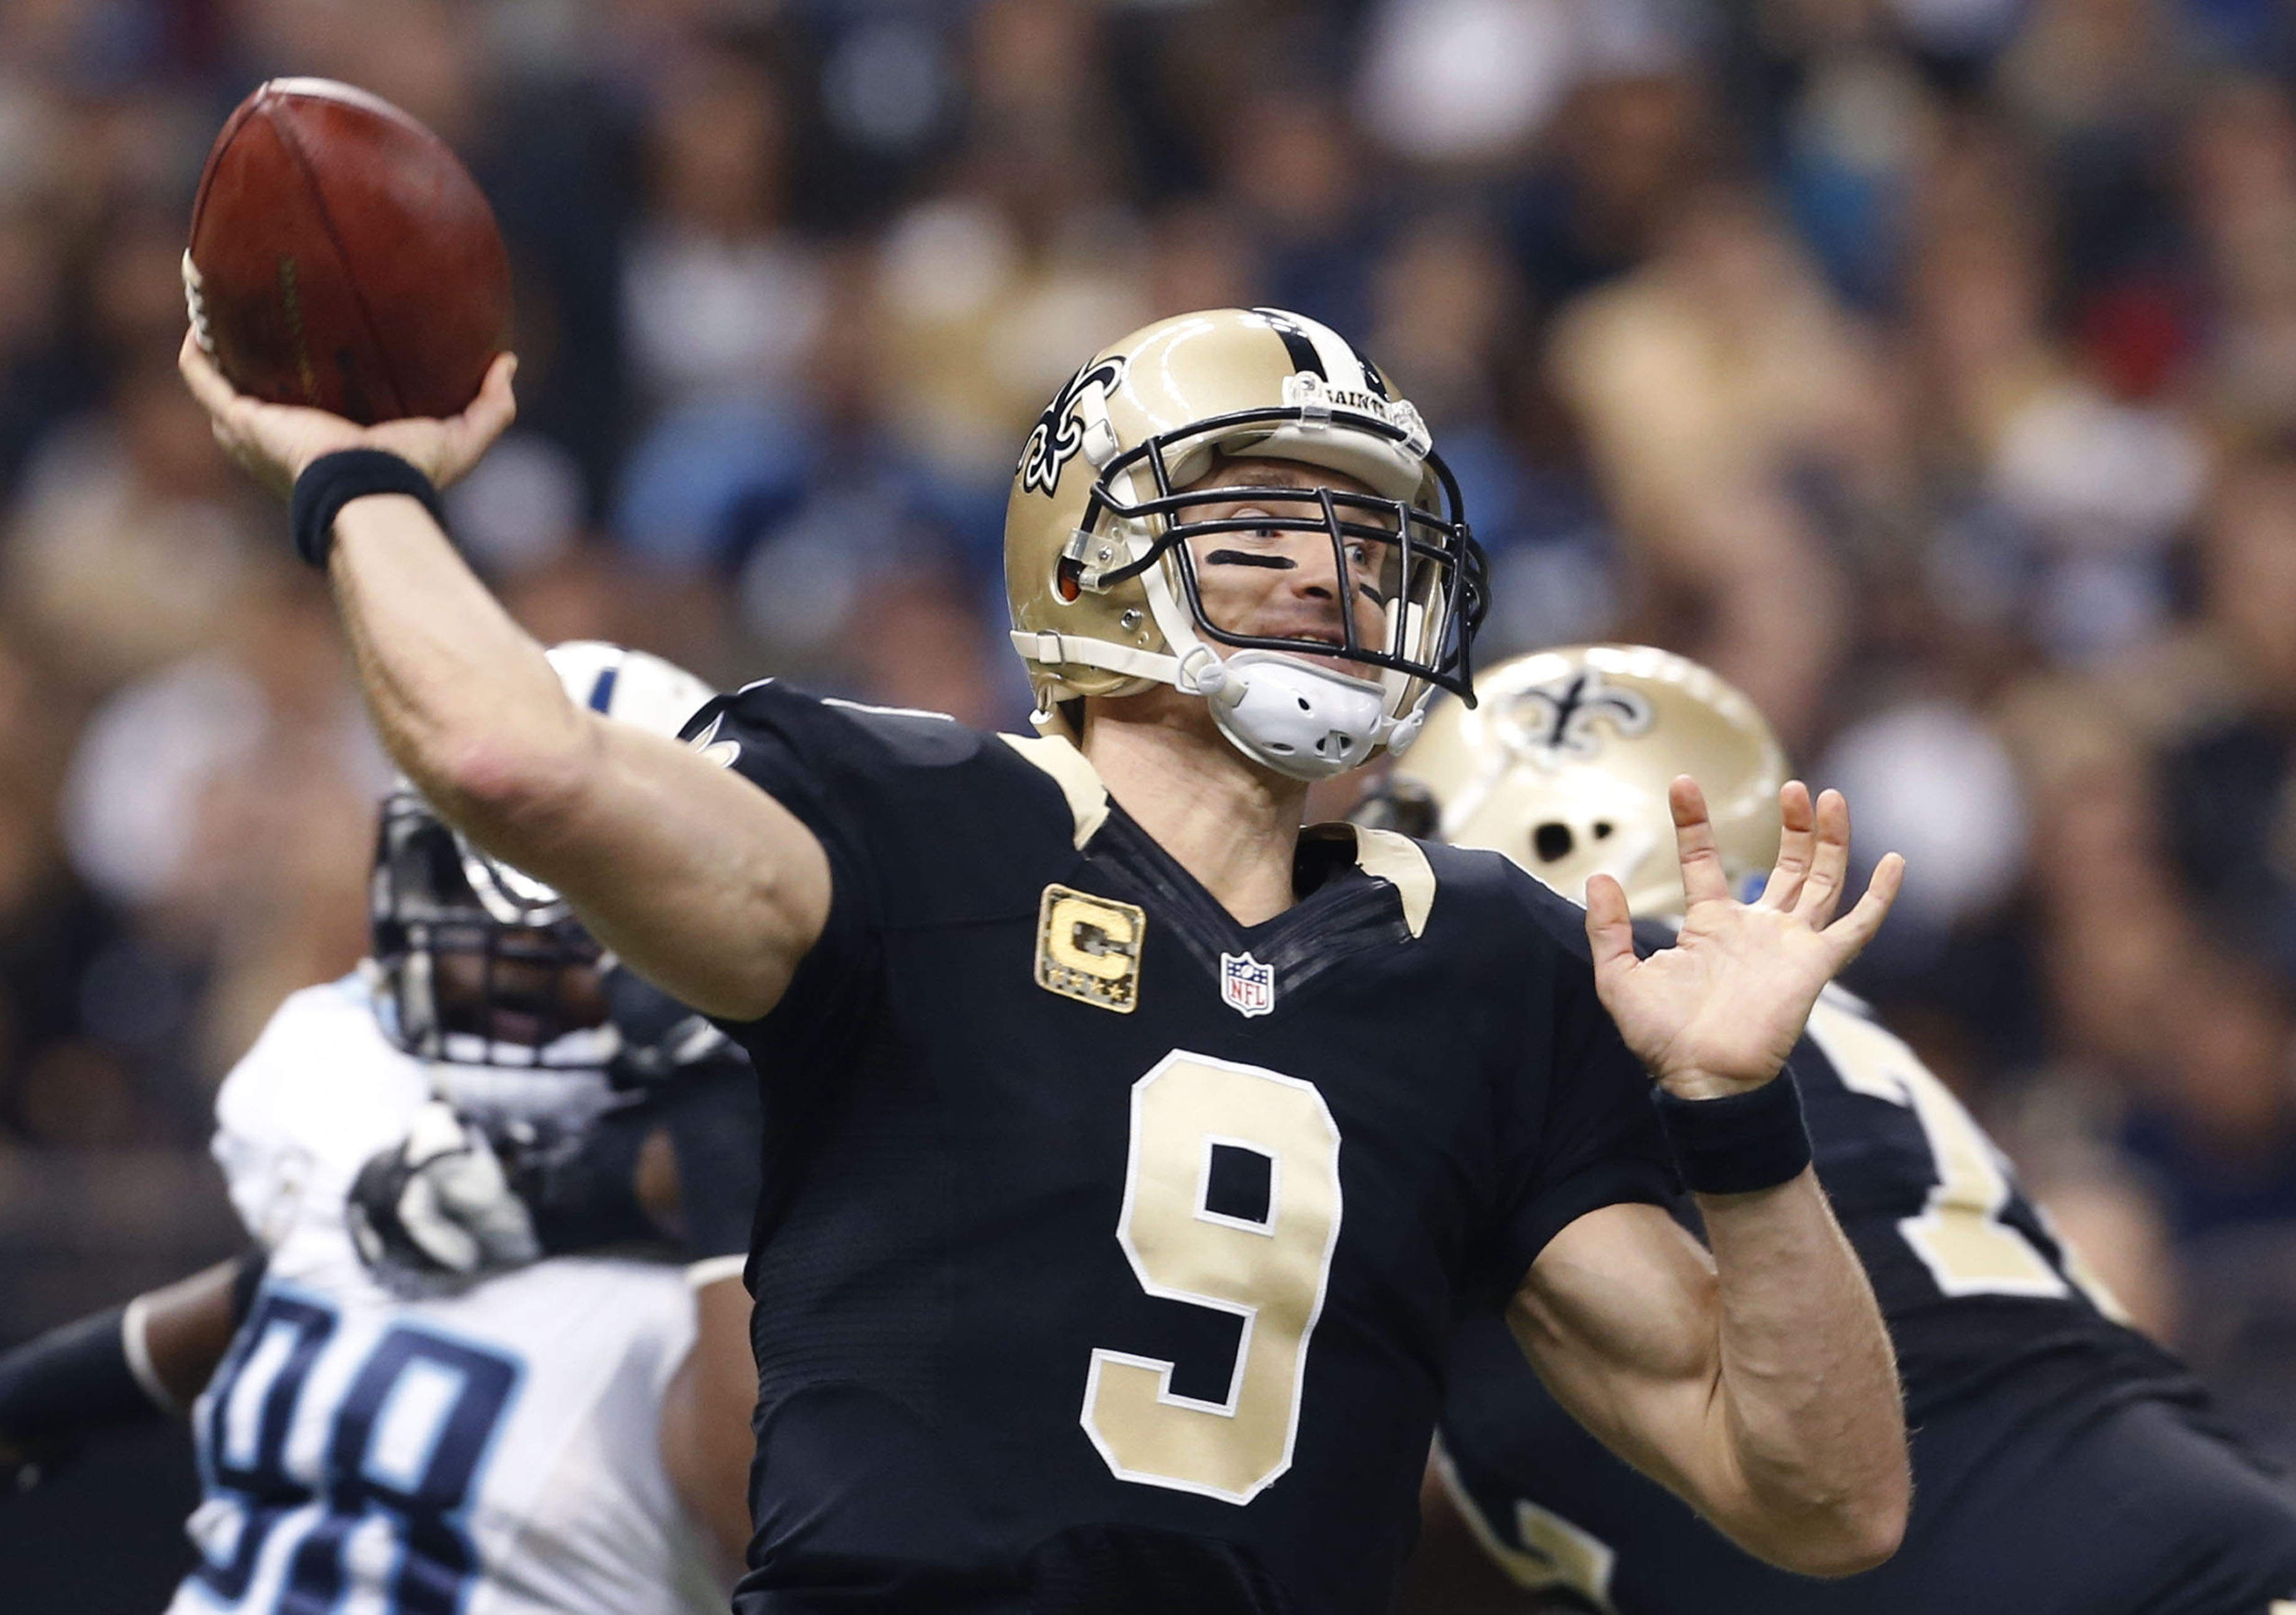 New Orleans Saints quarterback Drew Brees (9) passes in the first half of an NFL football game against the Tennessee Titans in New Orleans, Sunday, Nov. 8, 2015. (AP Photo/Jonathan Bachman)